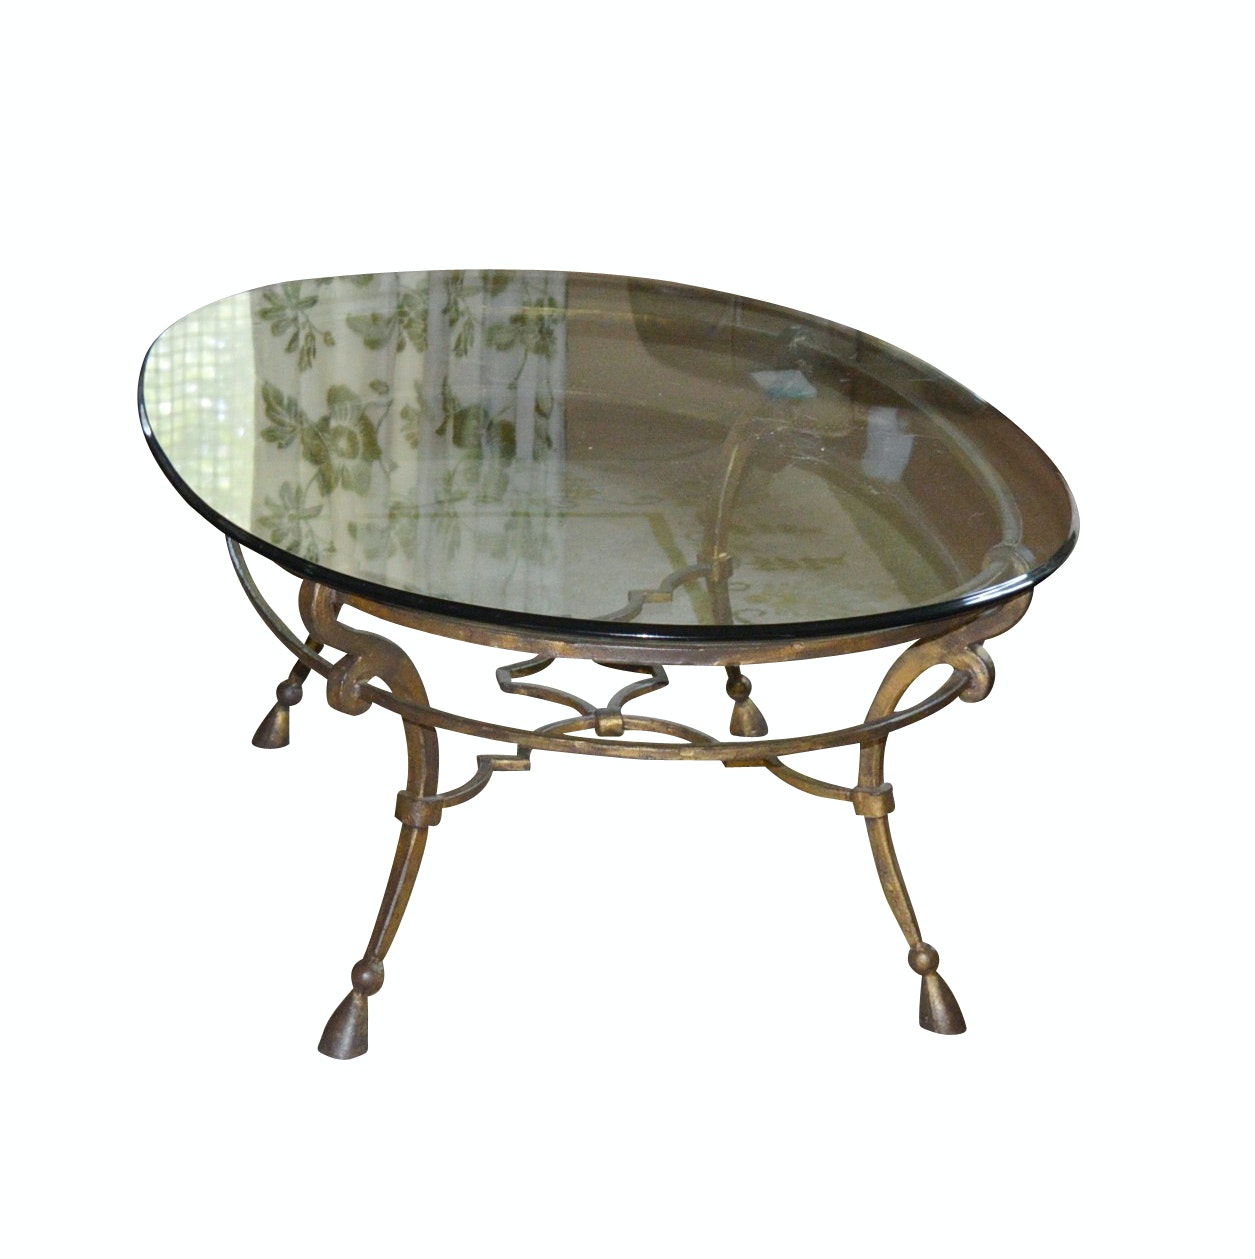 Glass and Iron Coffee Table from Closson's